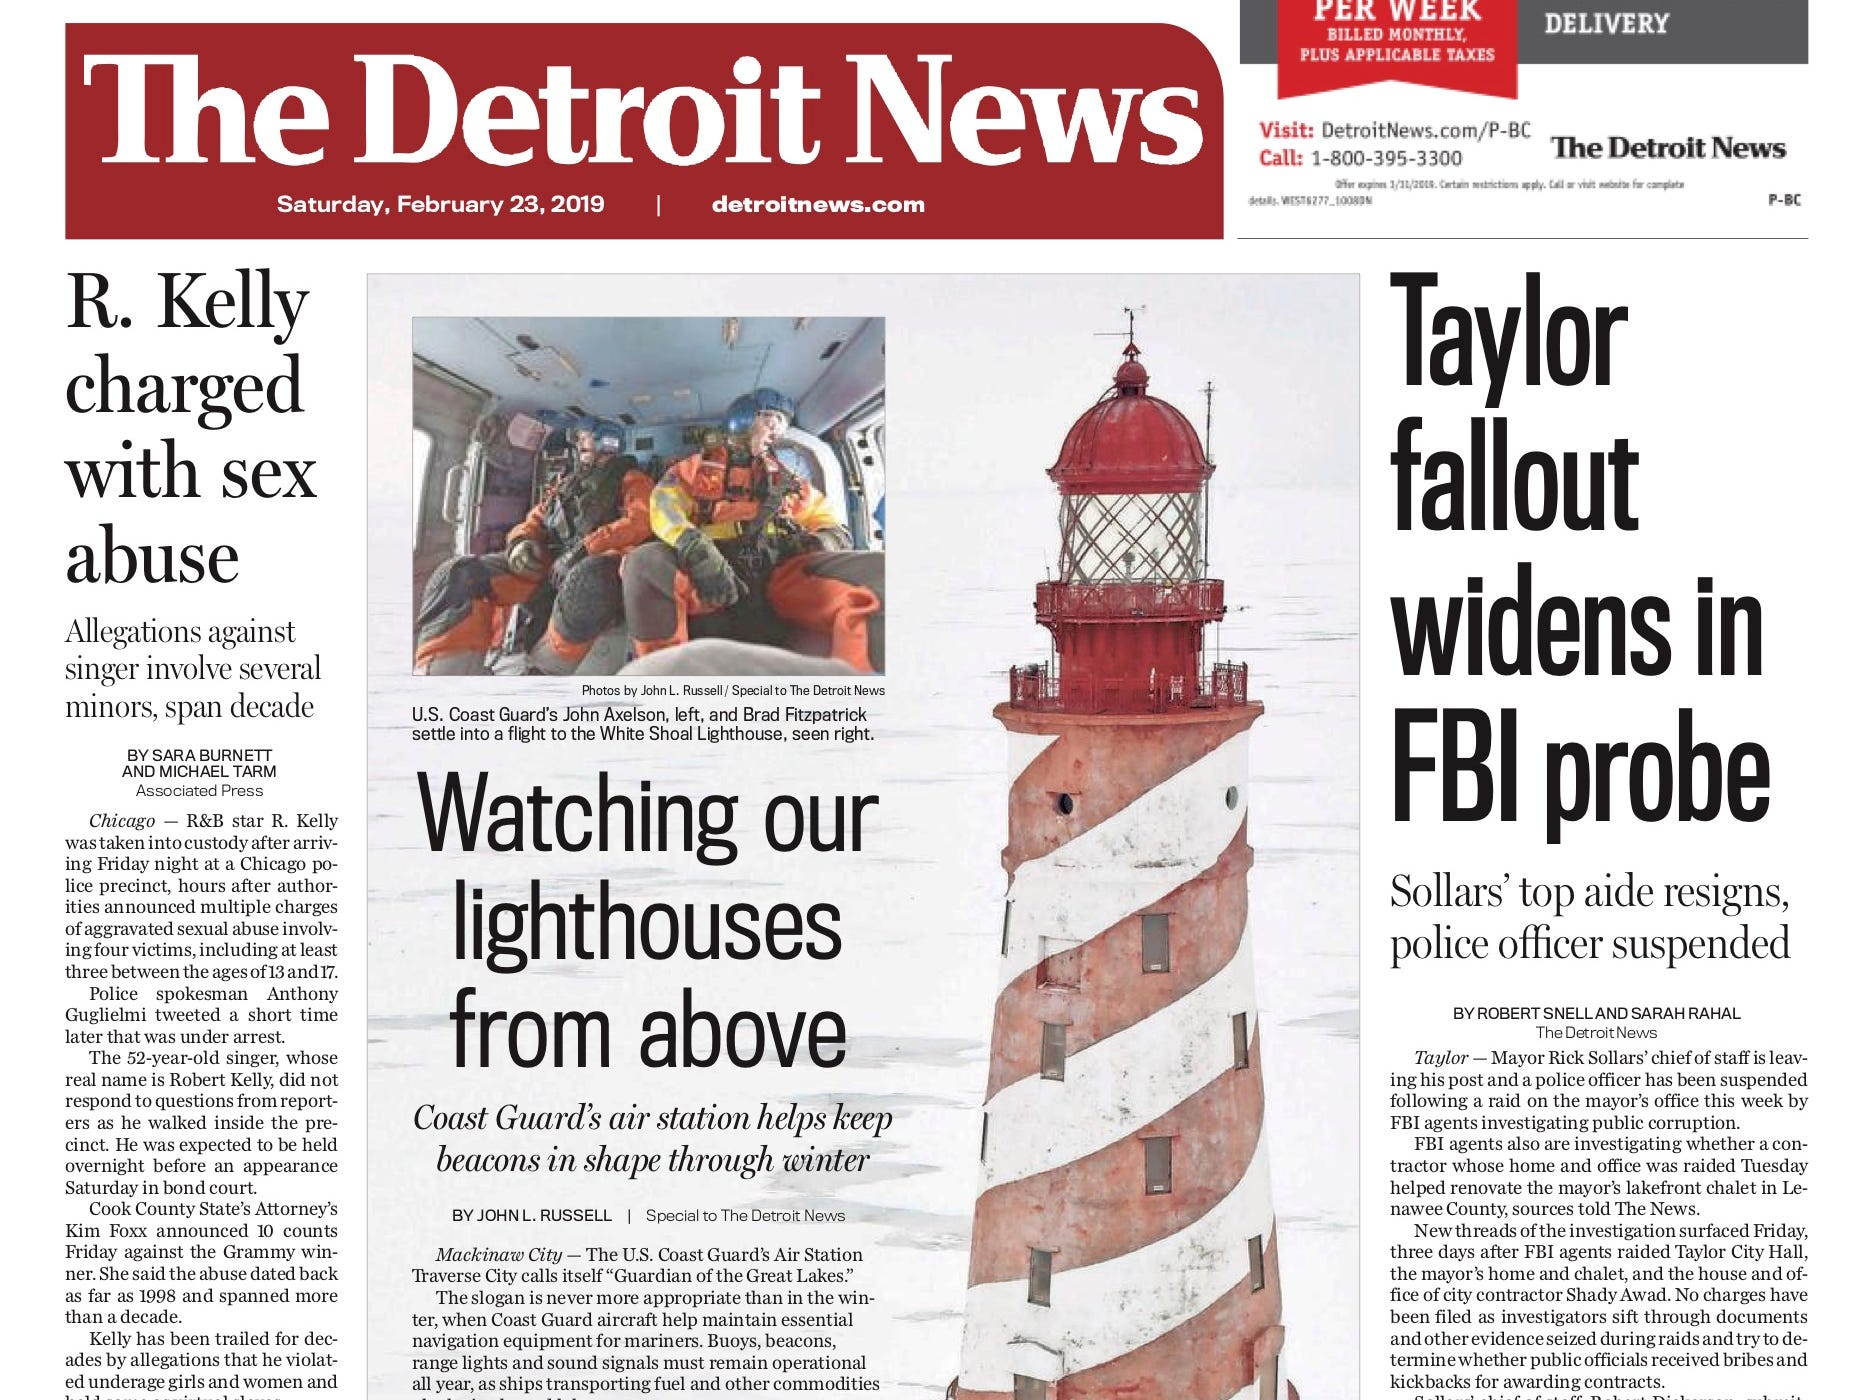 The front page of the Detroit News on February 23, 2019